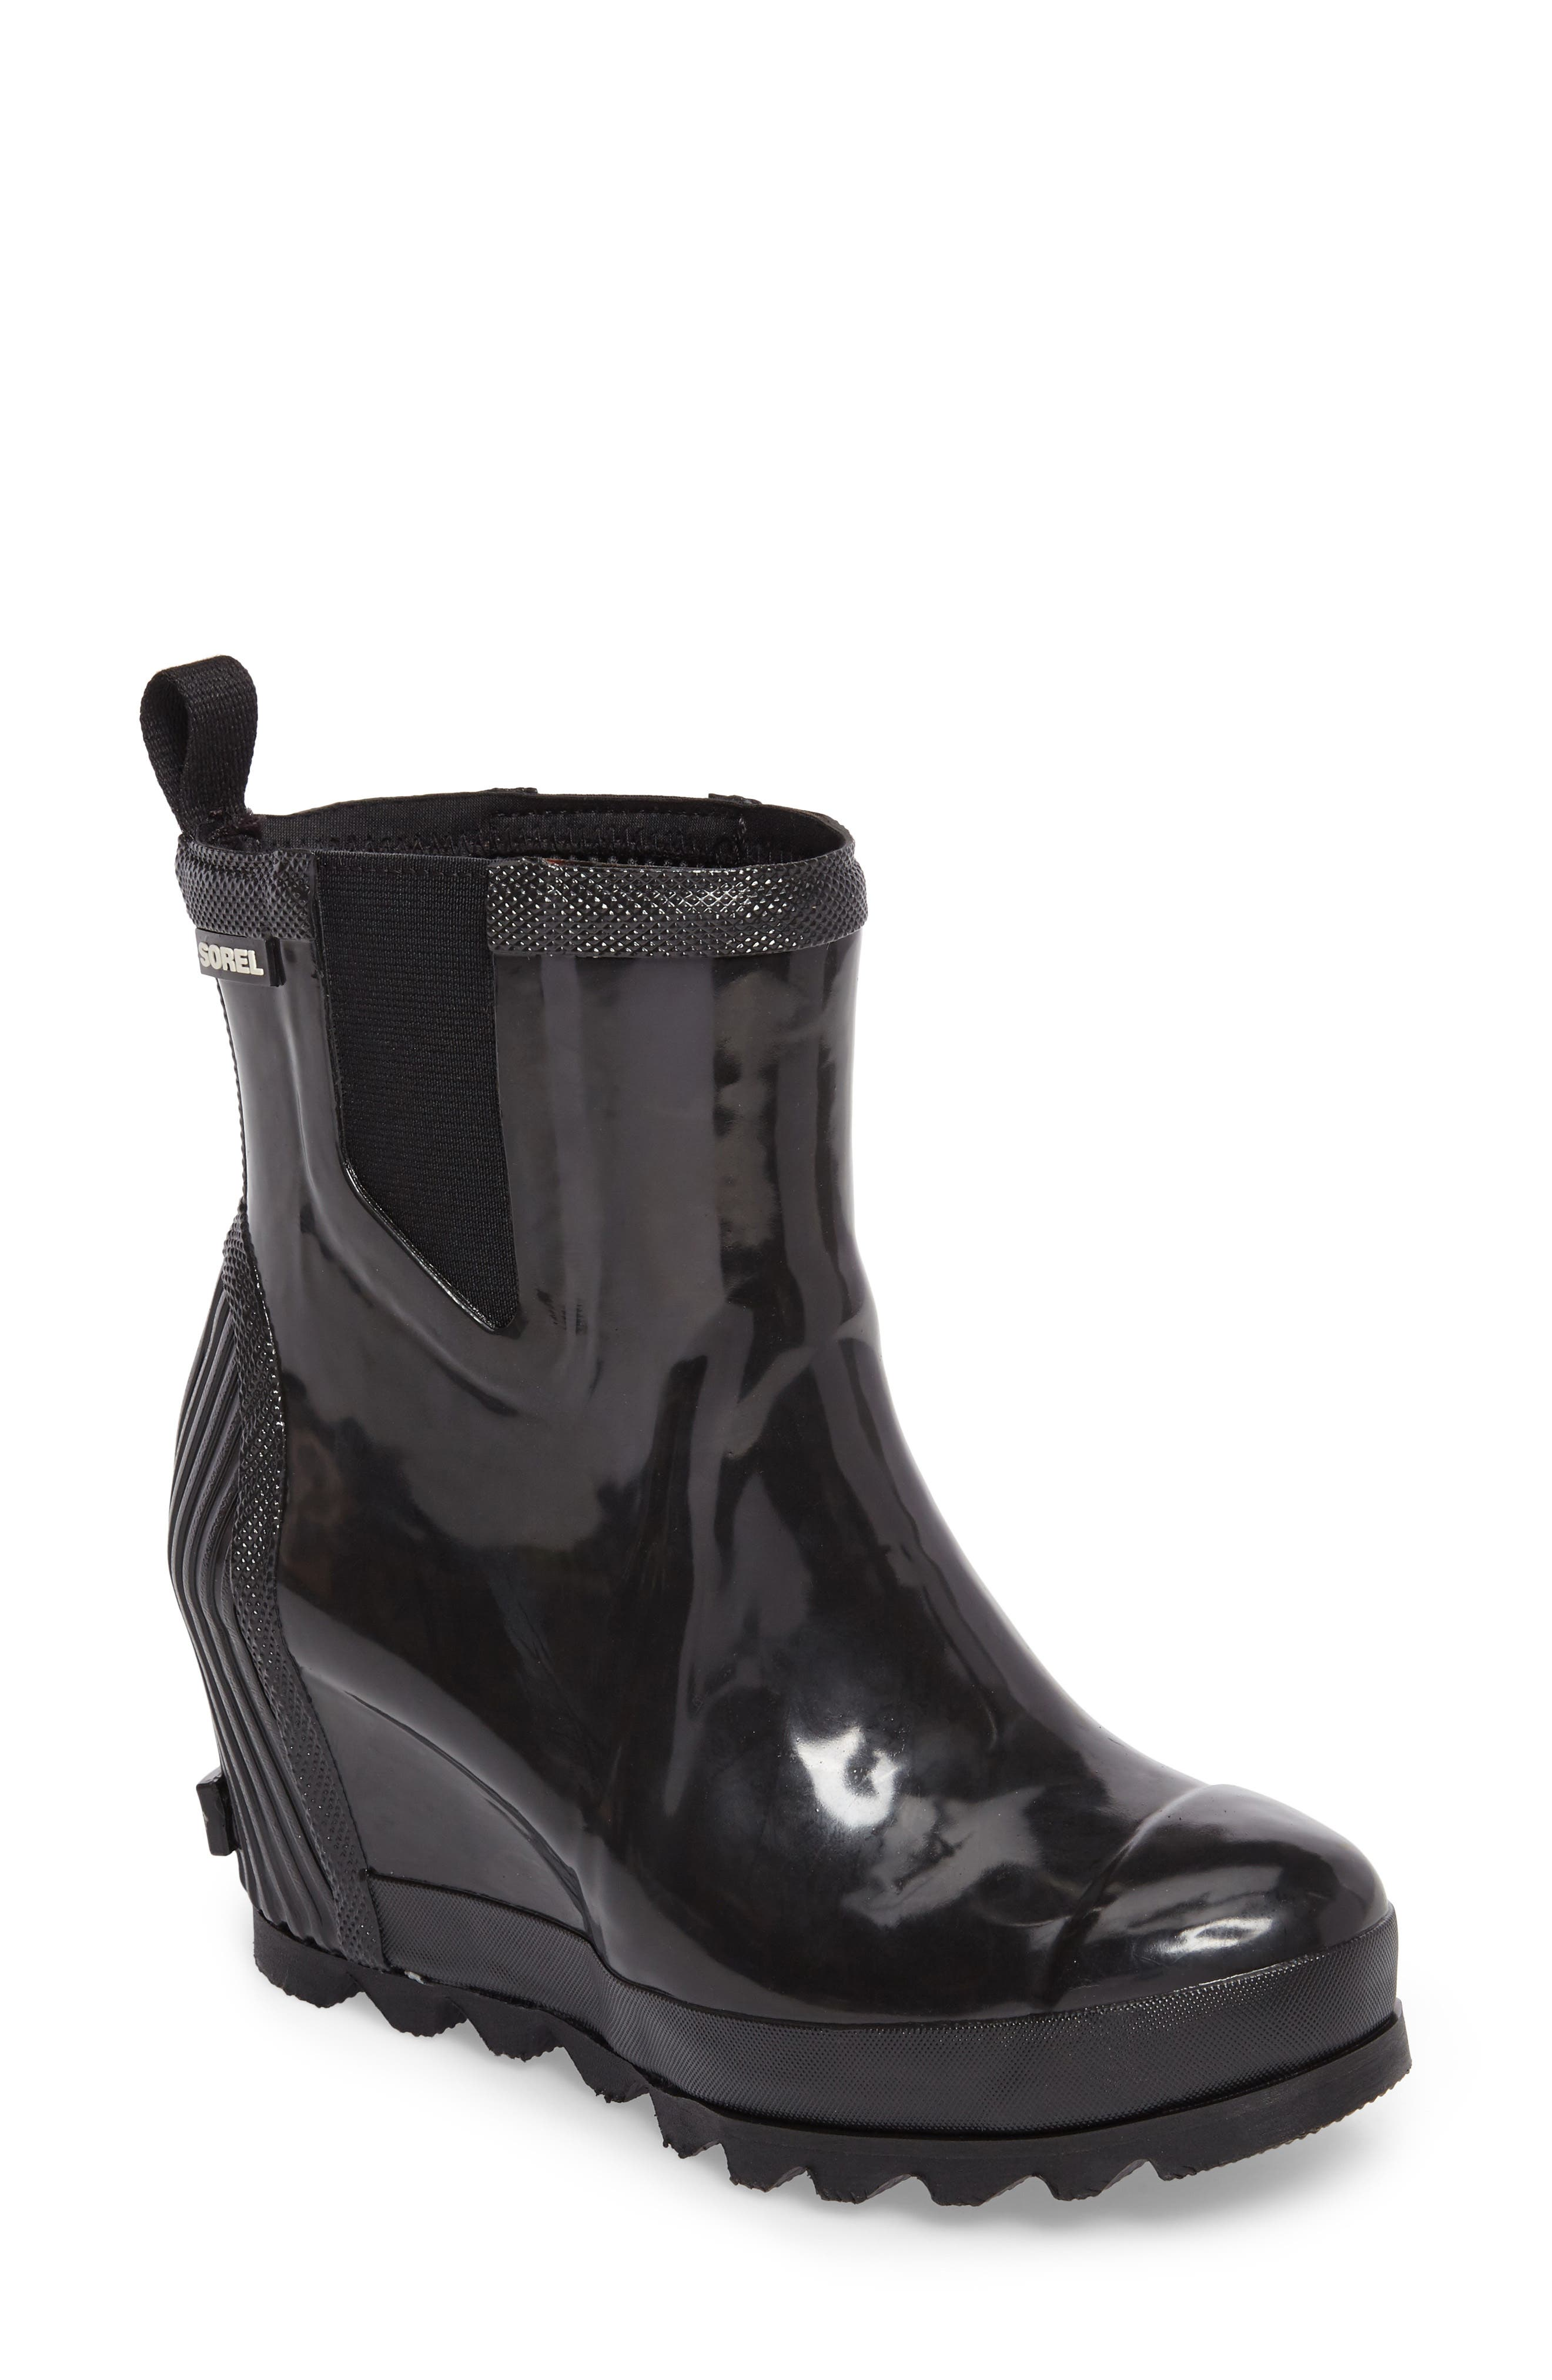 Sorel Joan Glossy Wedge Waterproof Rain Boot